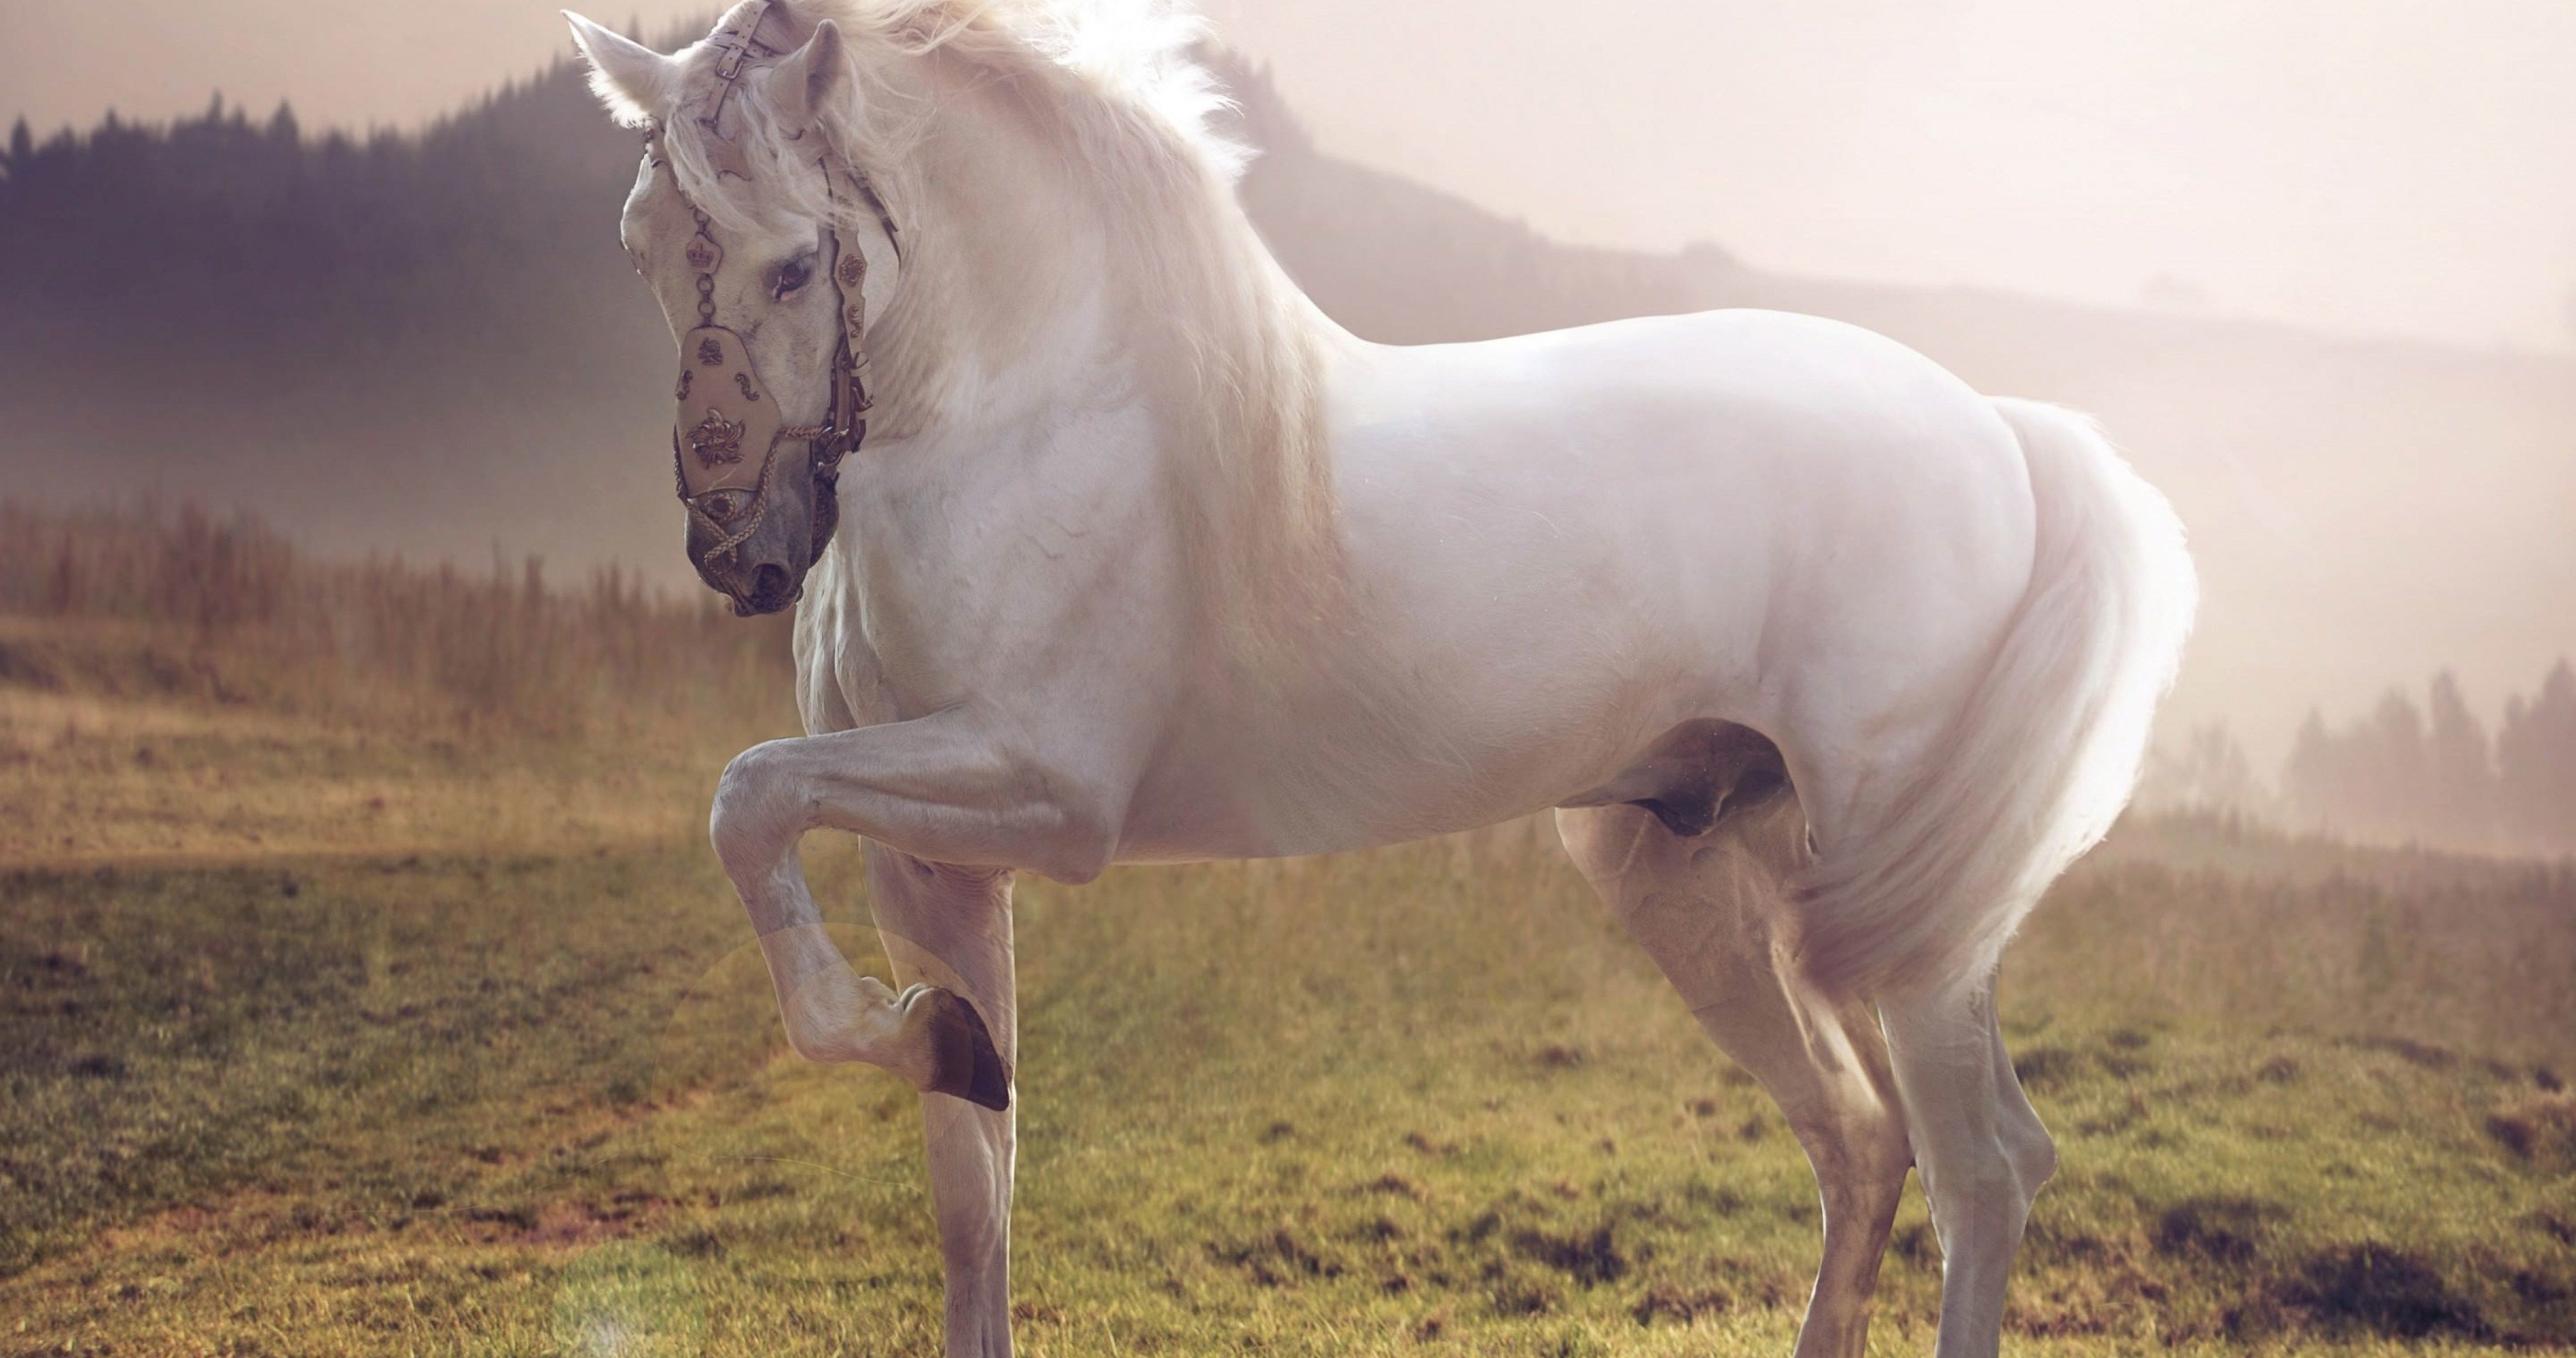 White Stallion 4k Ultra Hd Wallpaper Horses White Arabian Horse Majestic White Horse